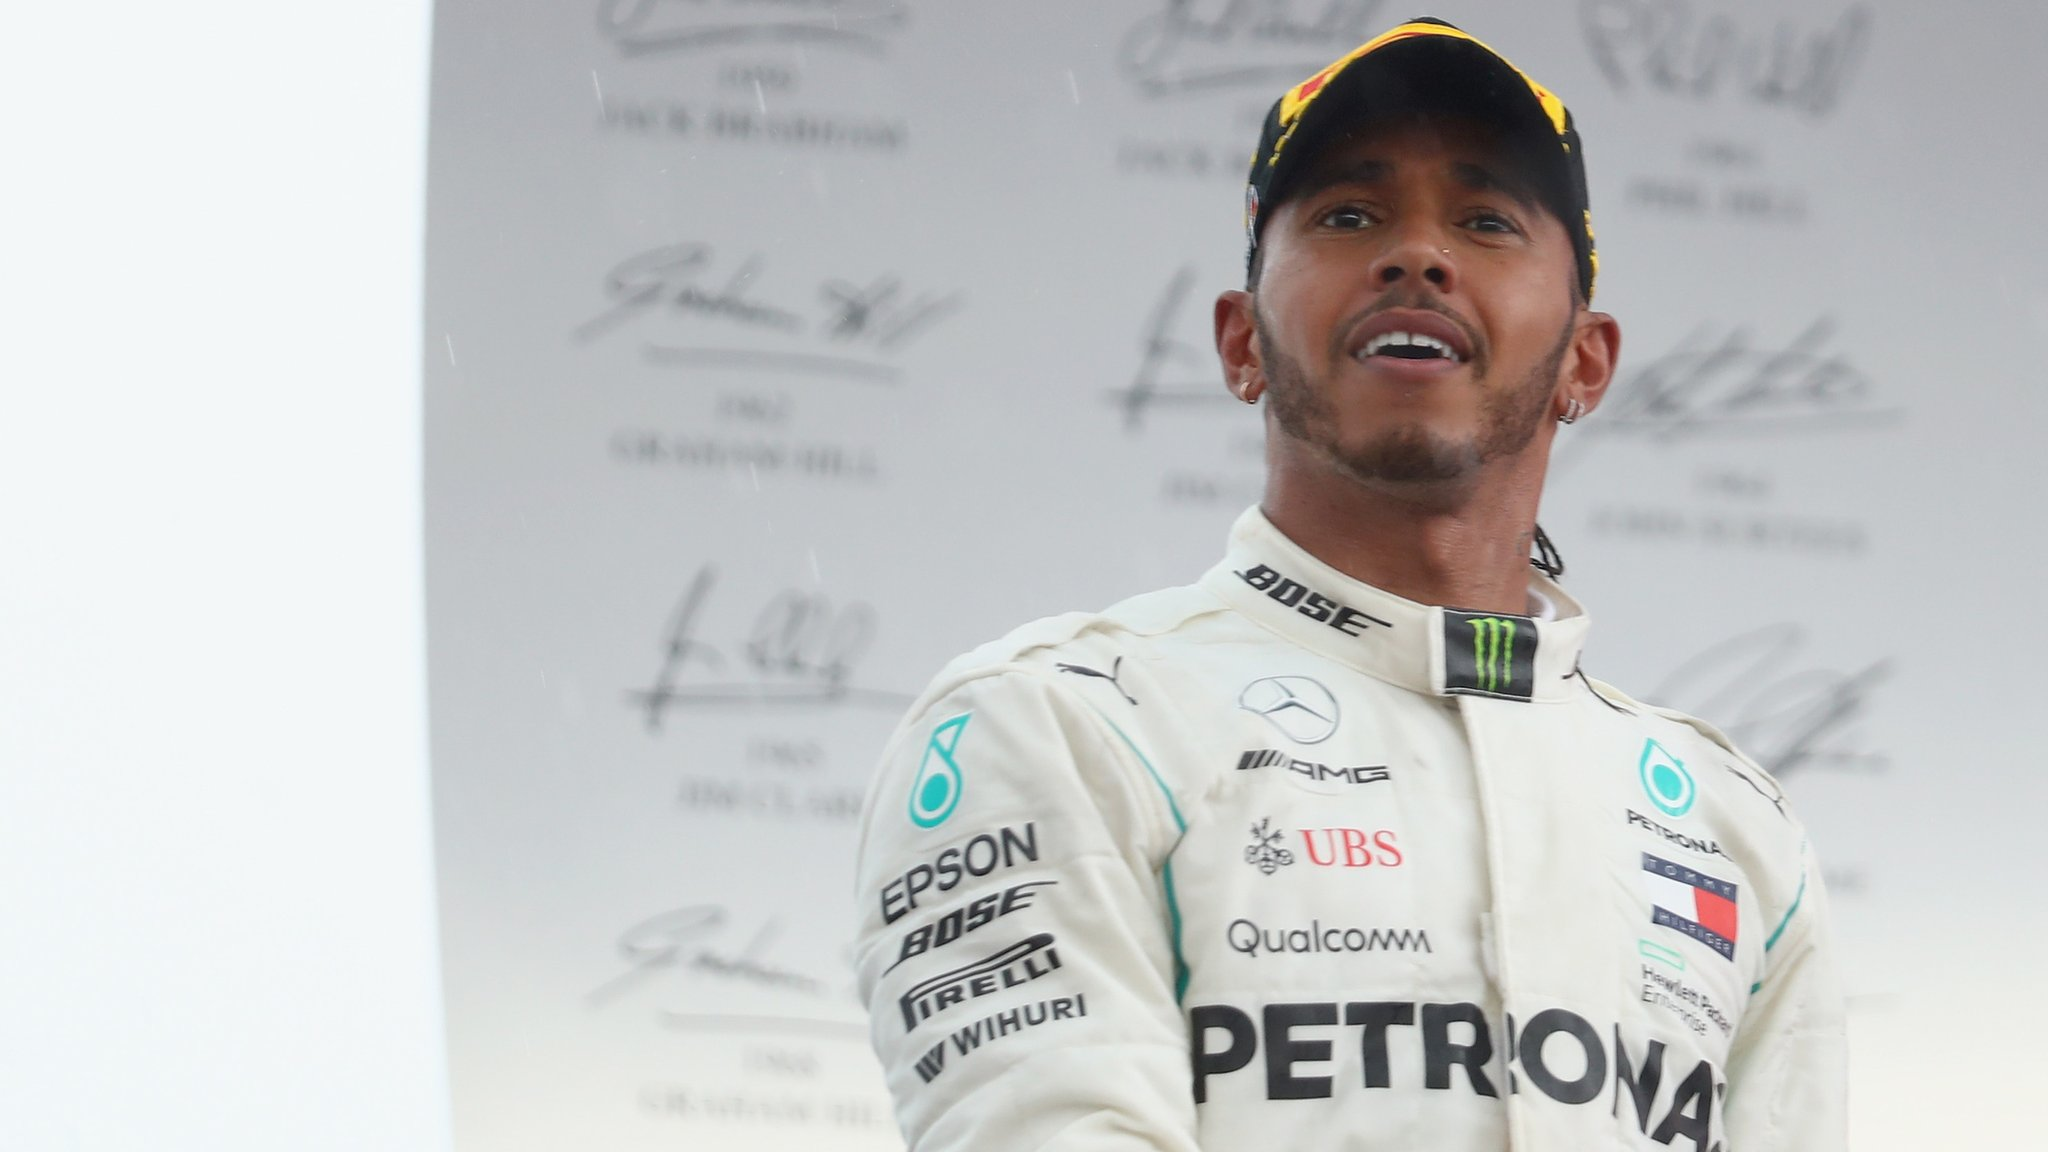 Dramatic victory & a reprimand - Hamilton reflects on 'emotional day'